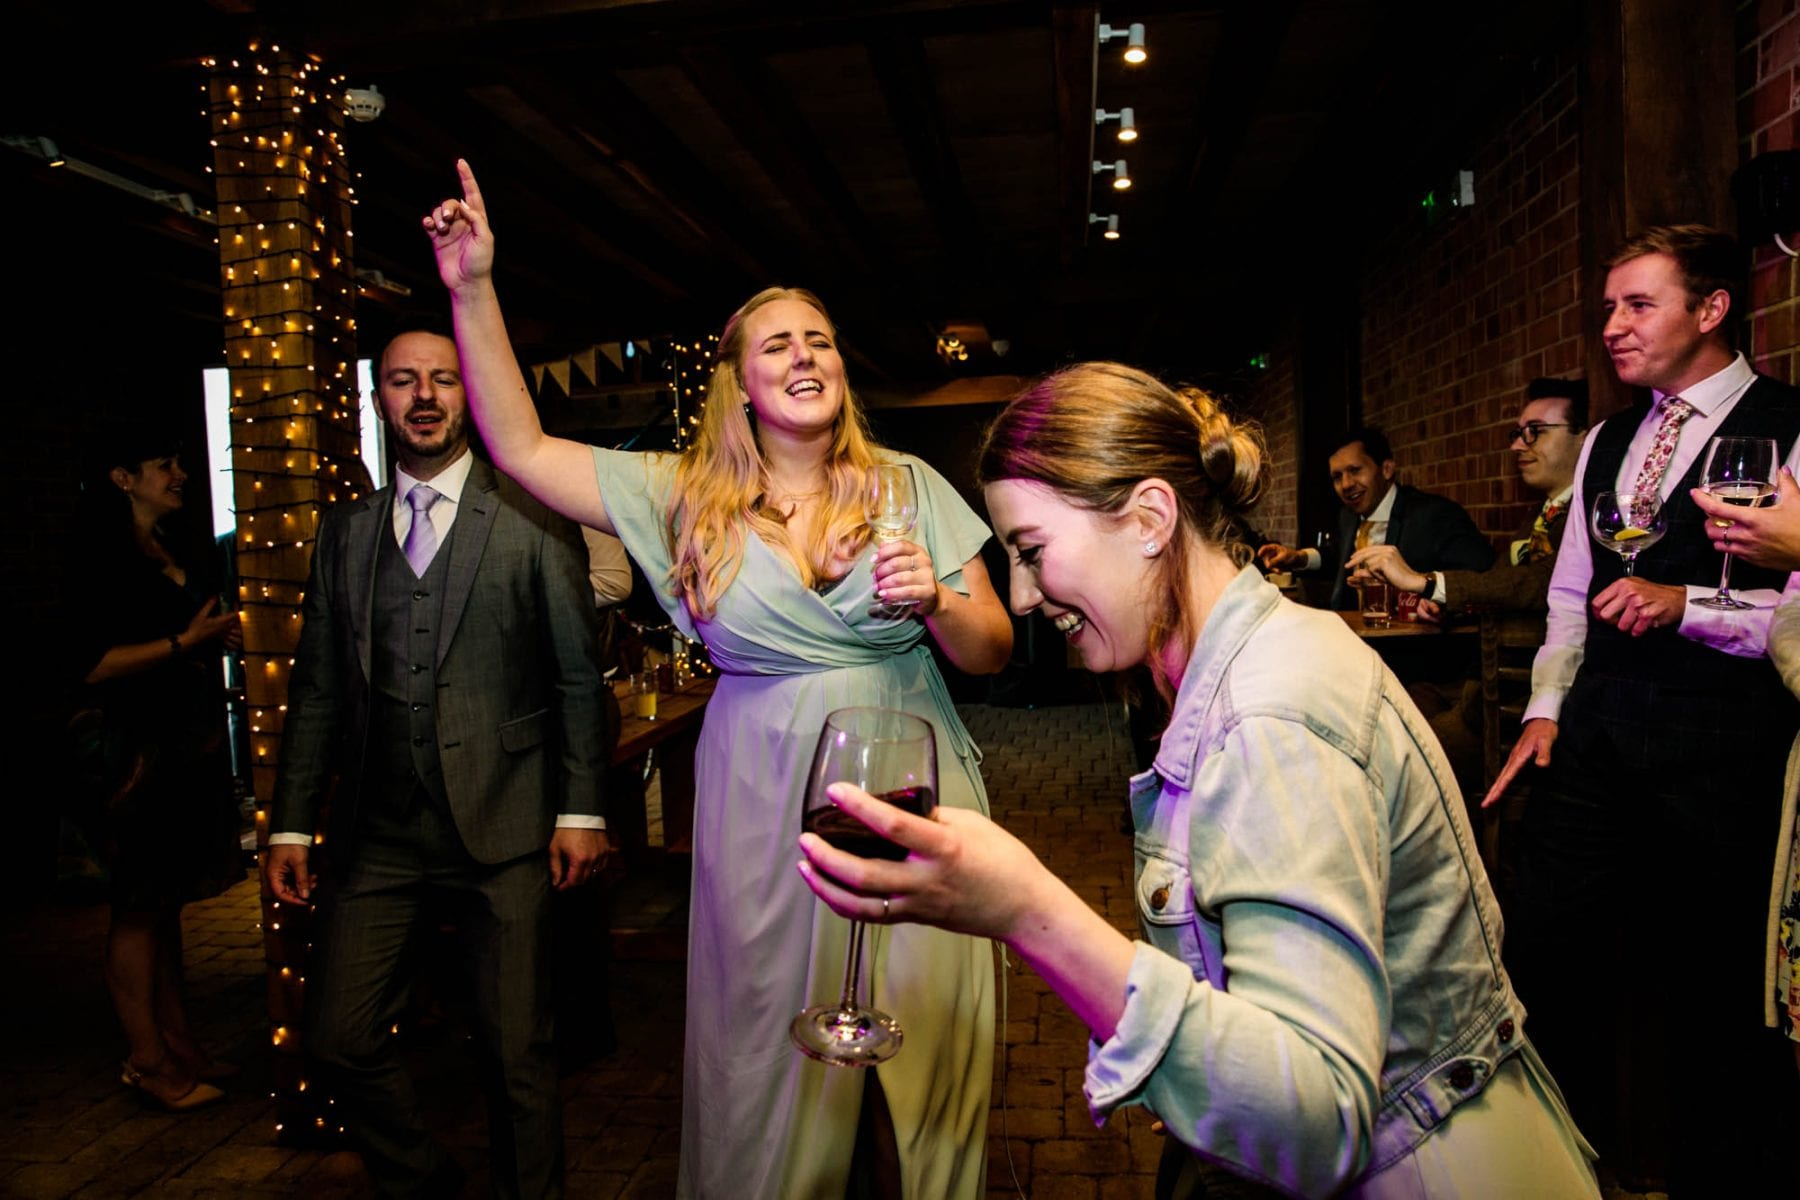 Guests dancing at Castle View Stables